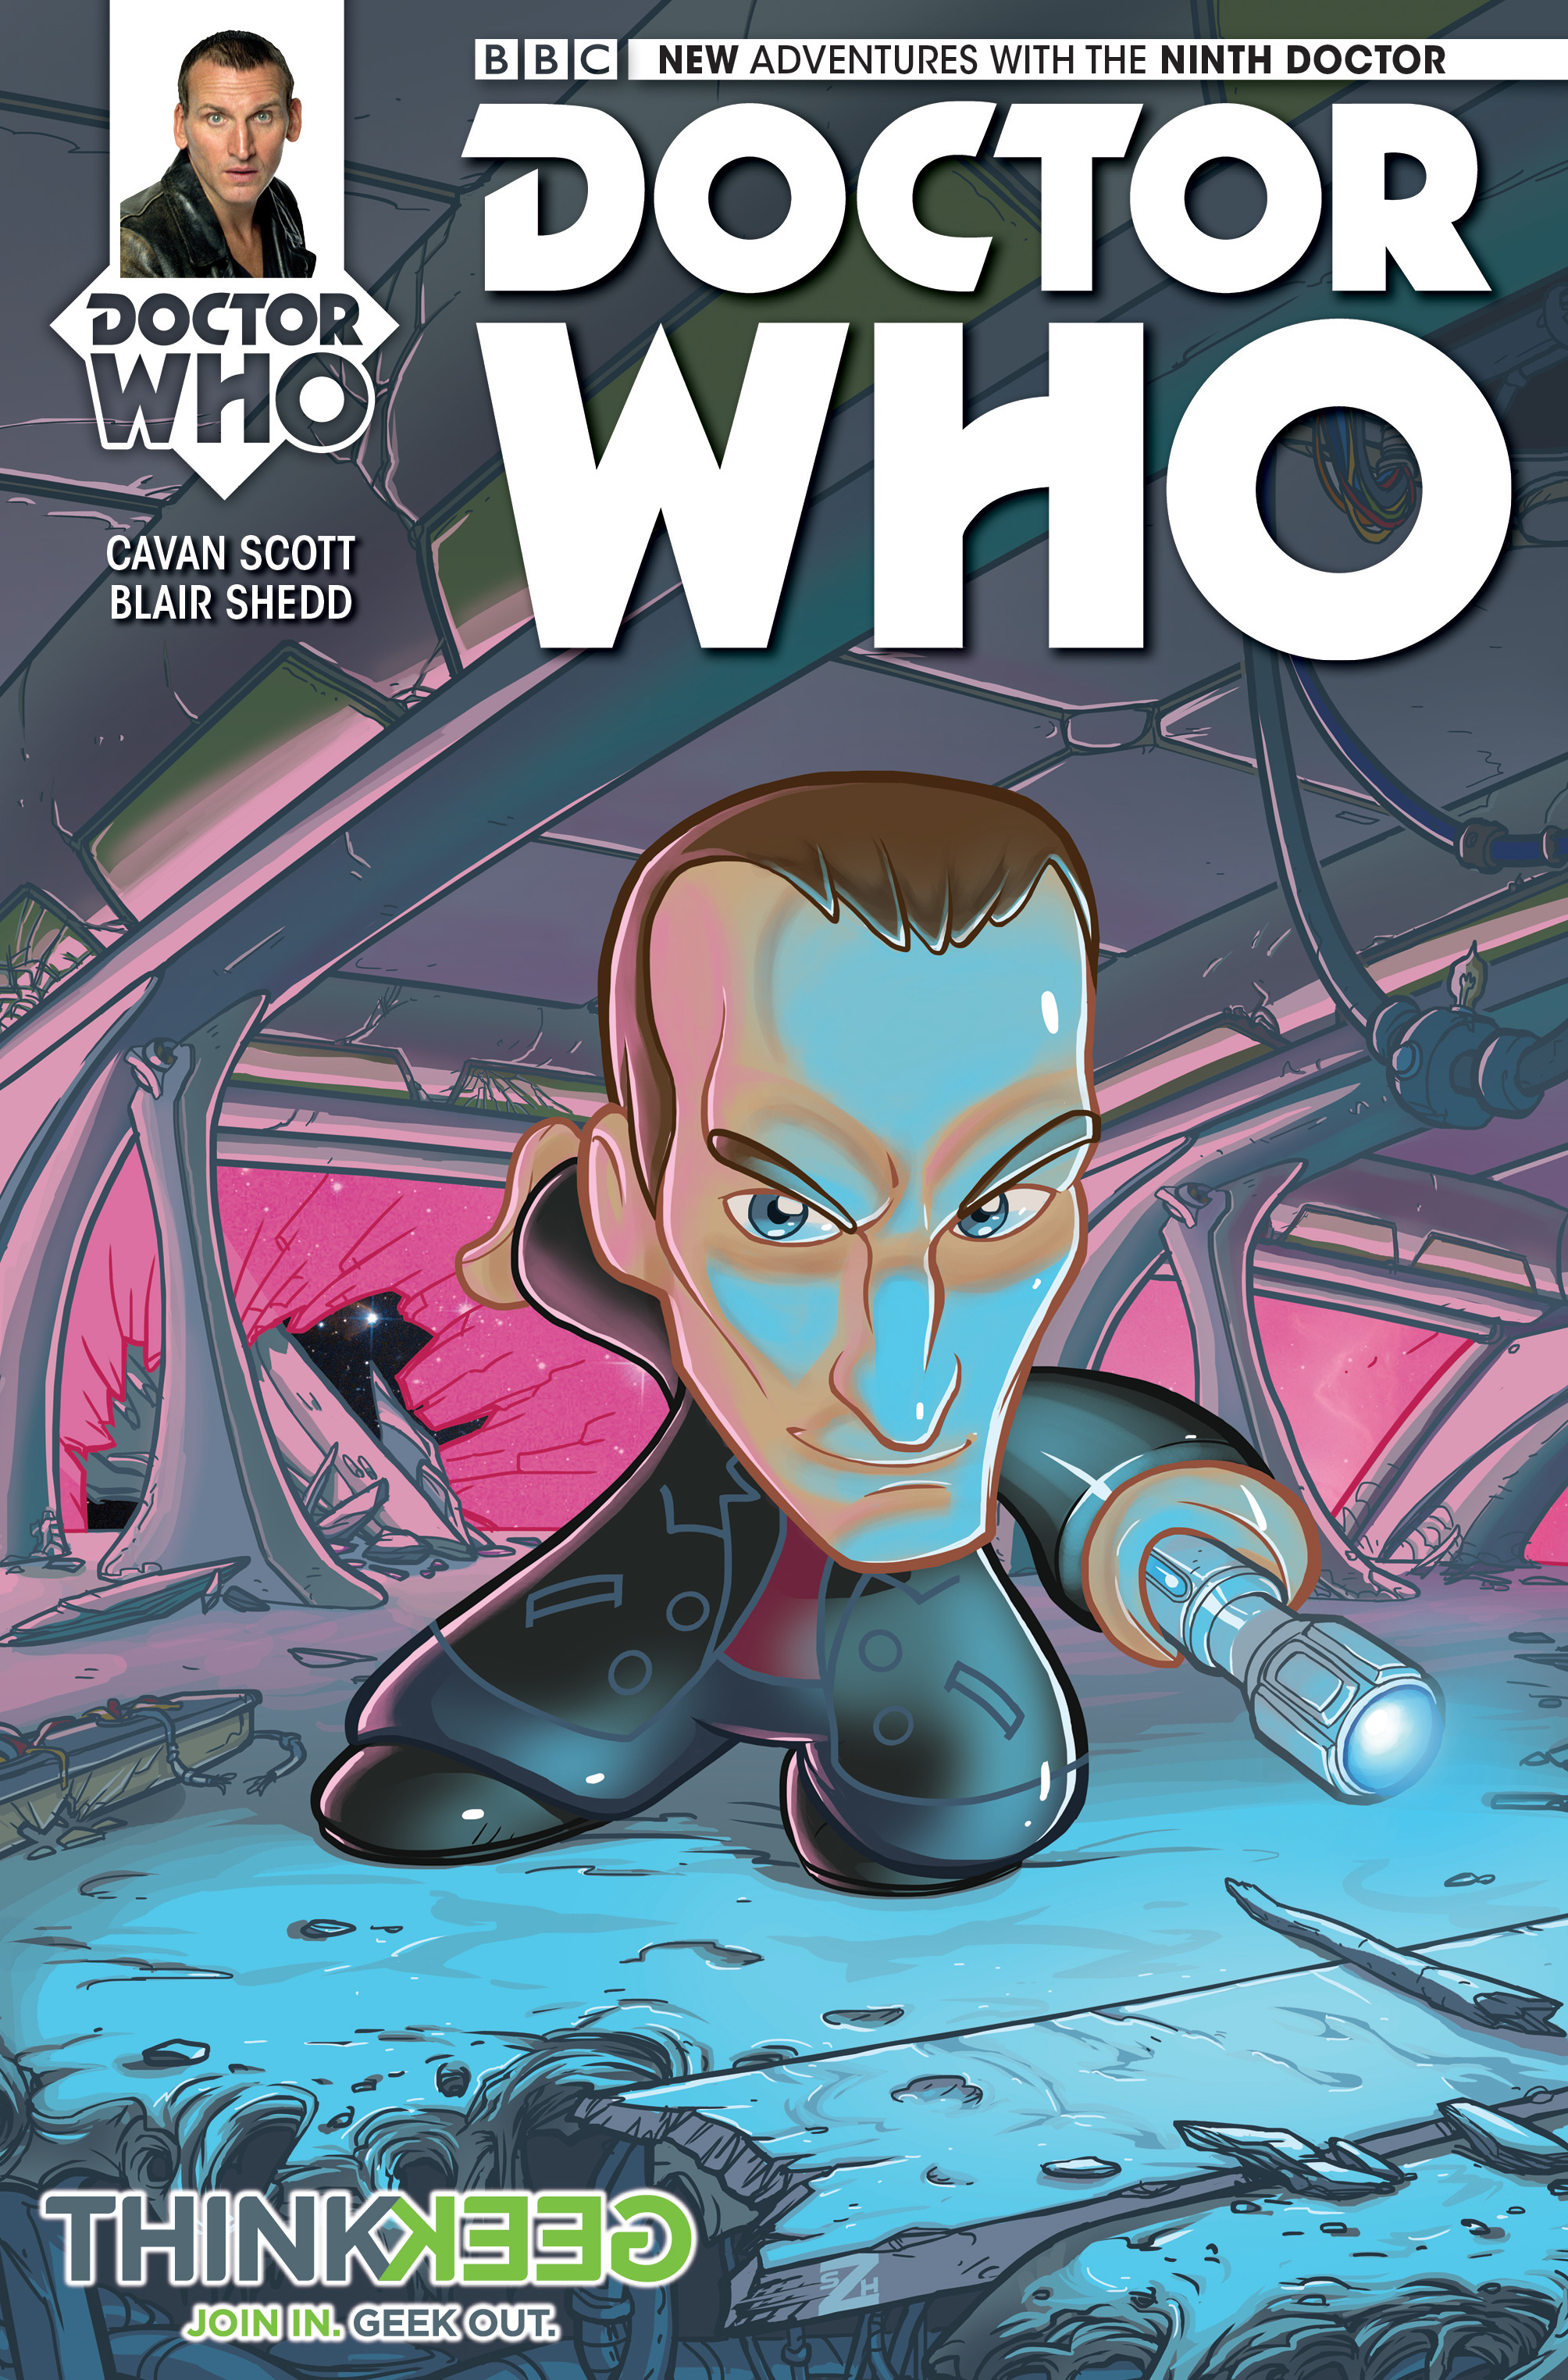 Ninth Doctor #1 Think Geek variant (Credit: Titan)